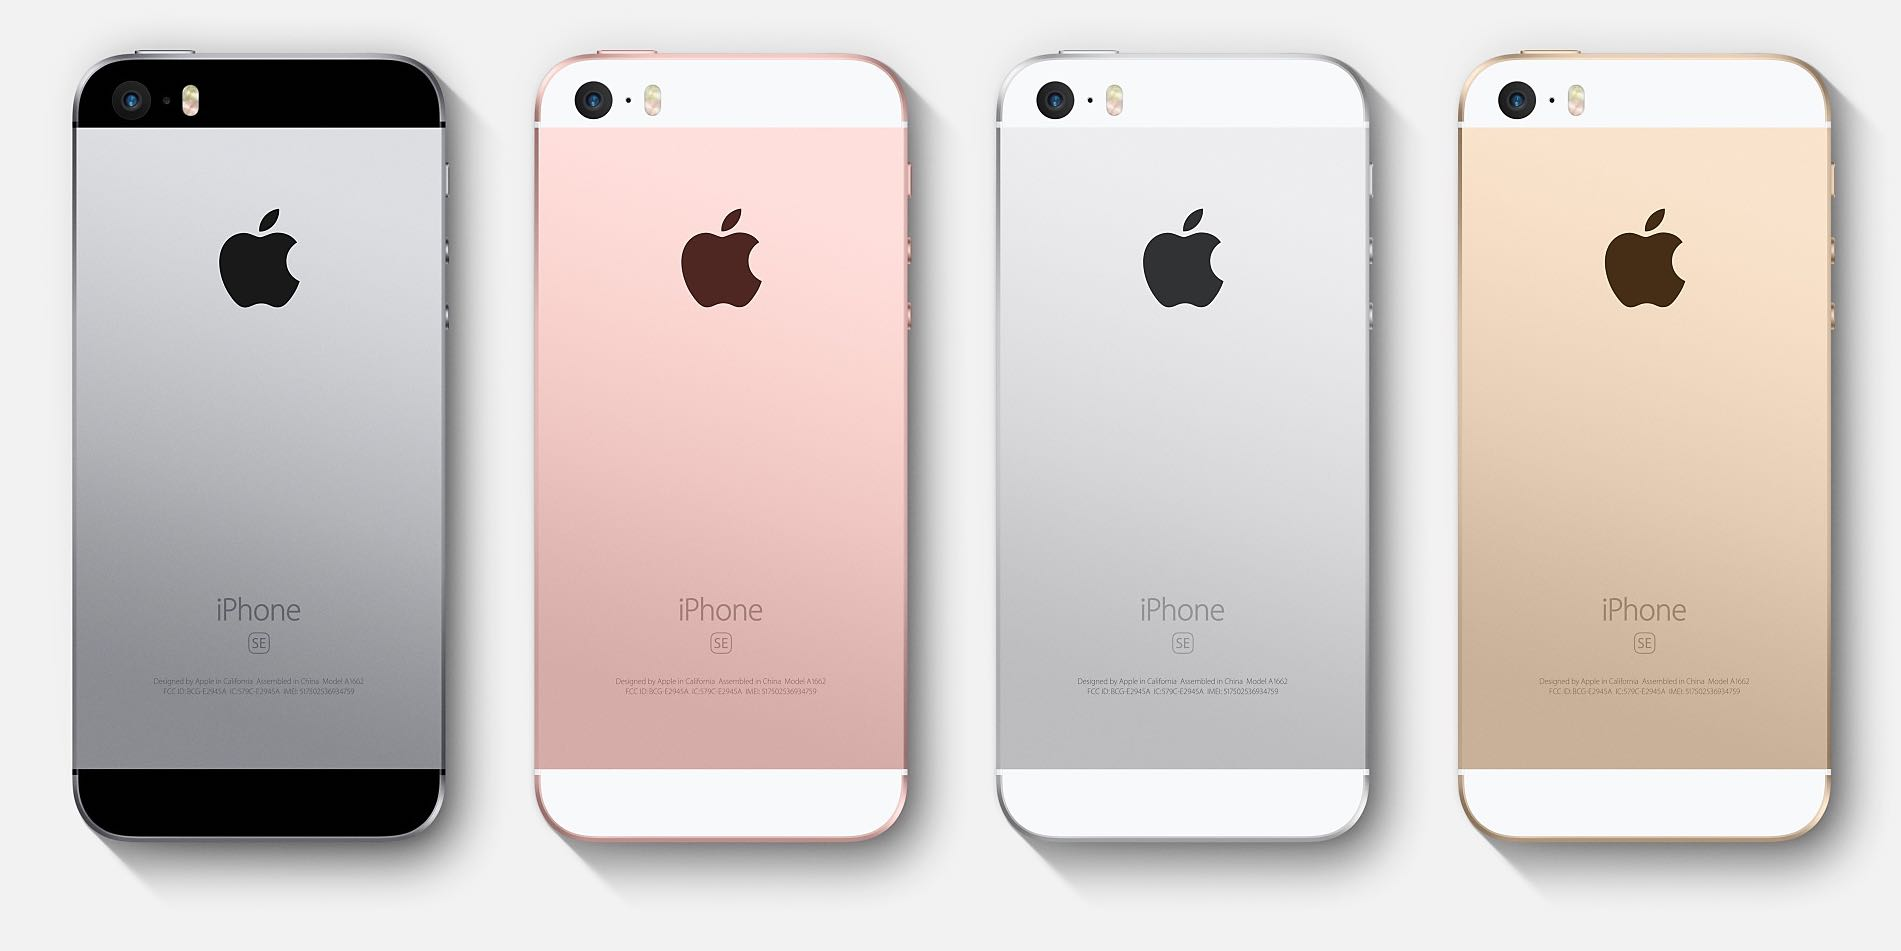 iPhone SE 2 rumors